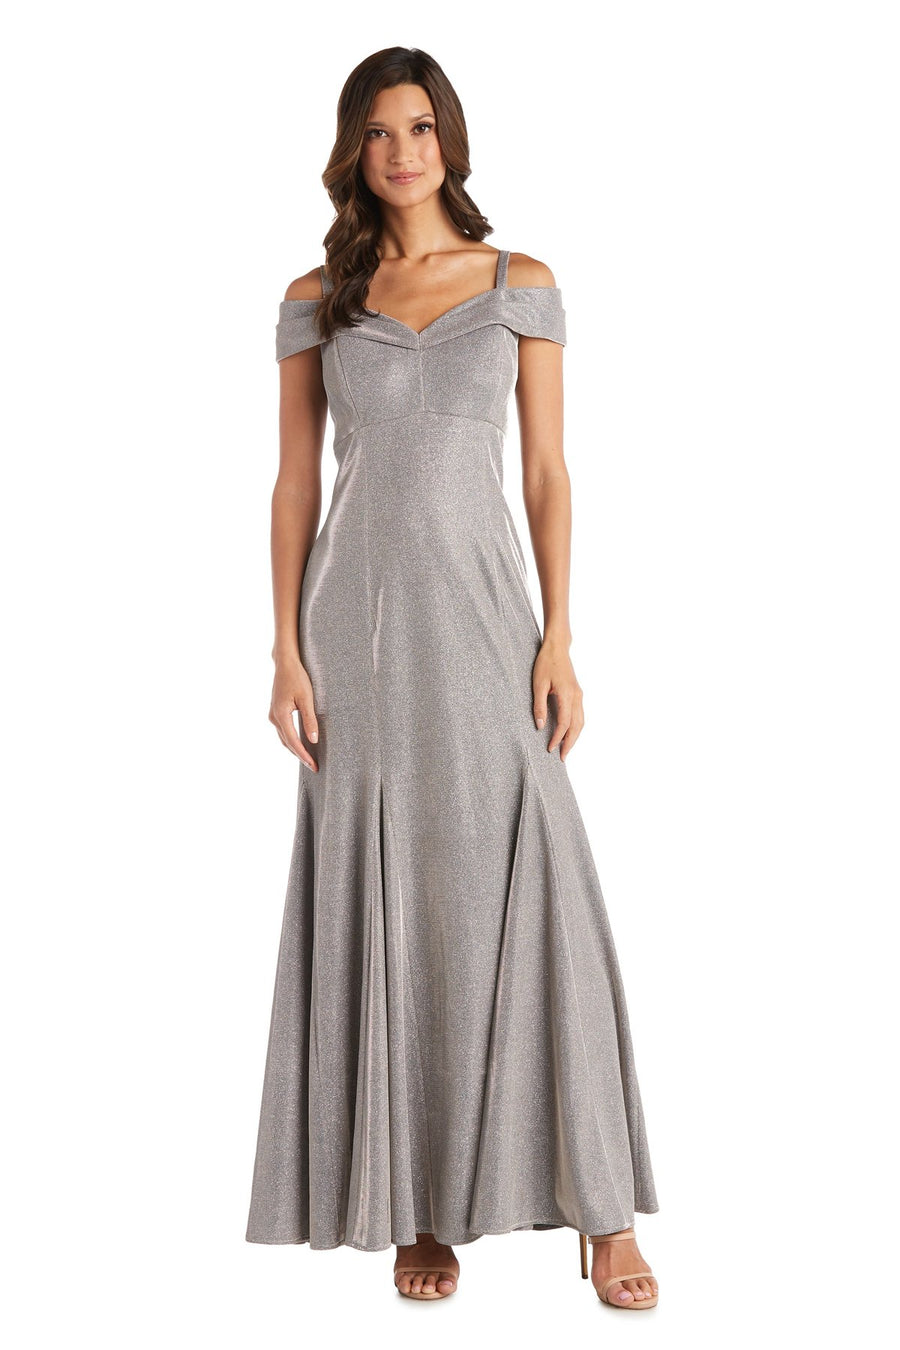 Off-the-shoulder Gown with Fishtail and Metallic Finish Scarlet